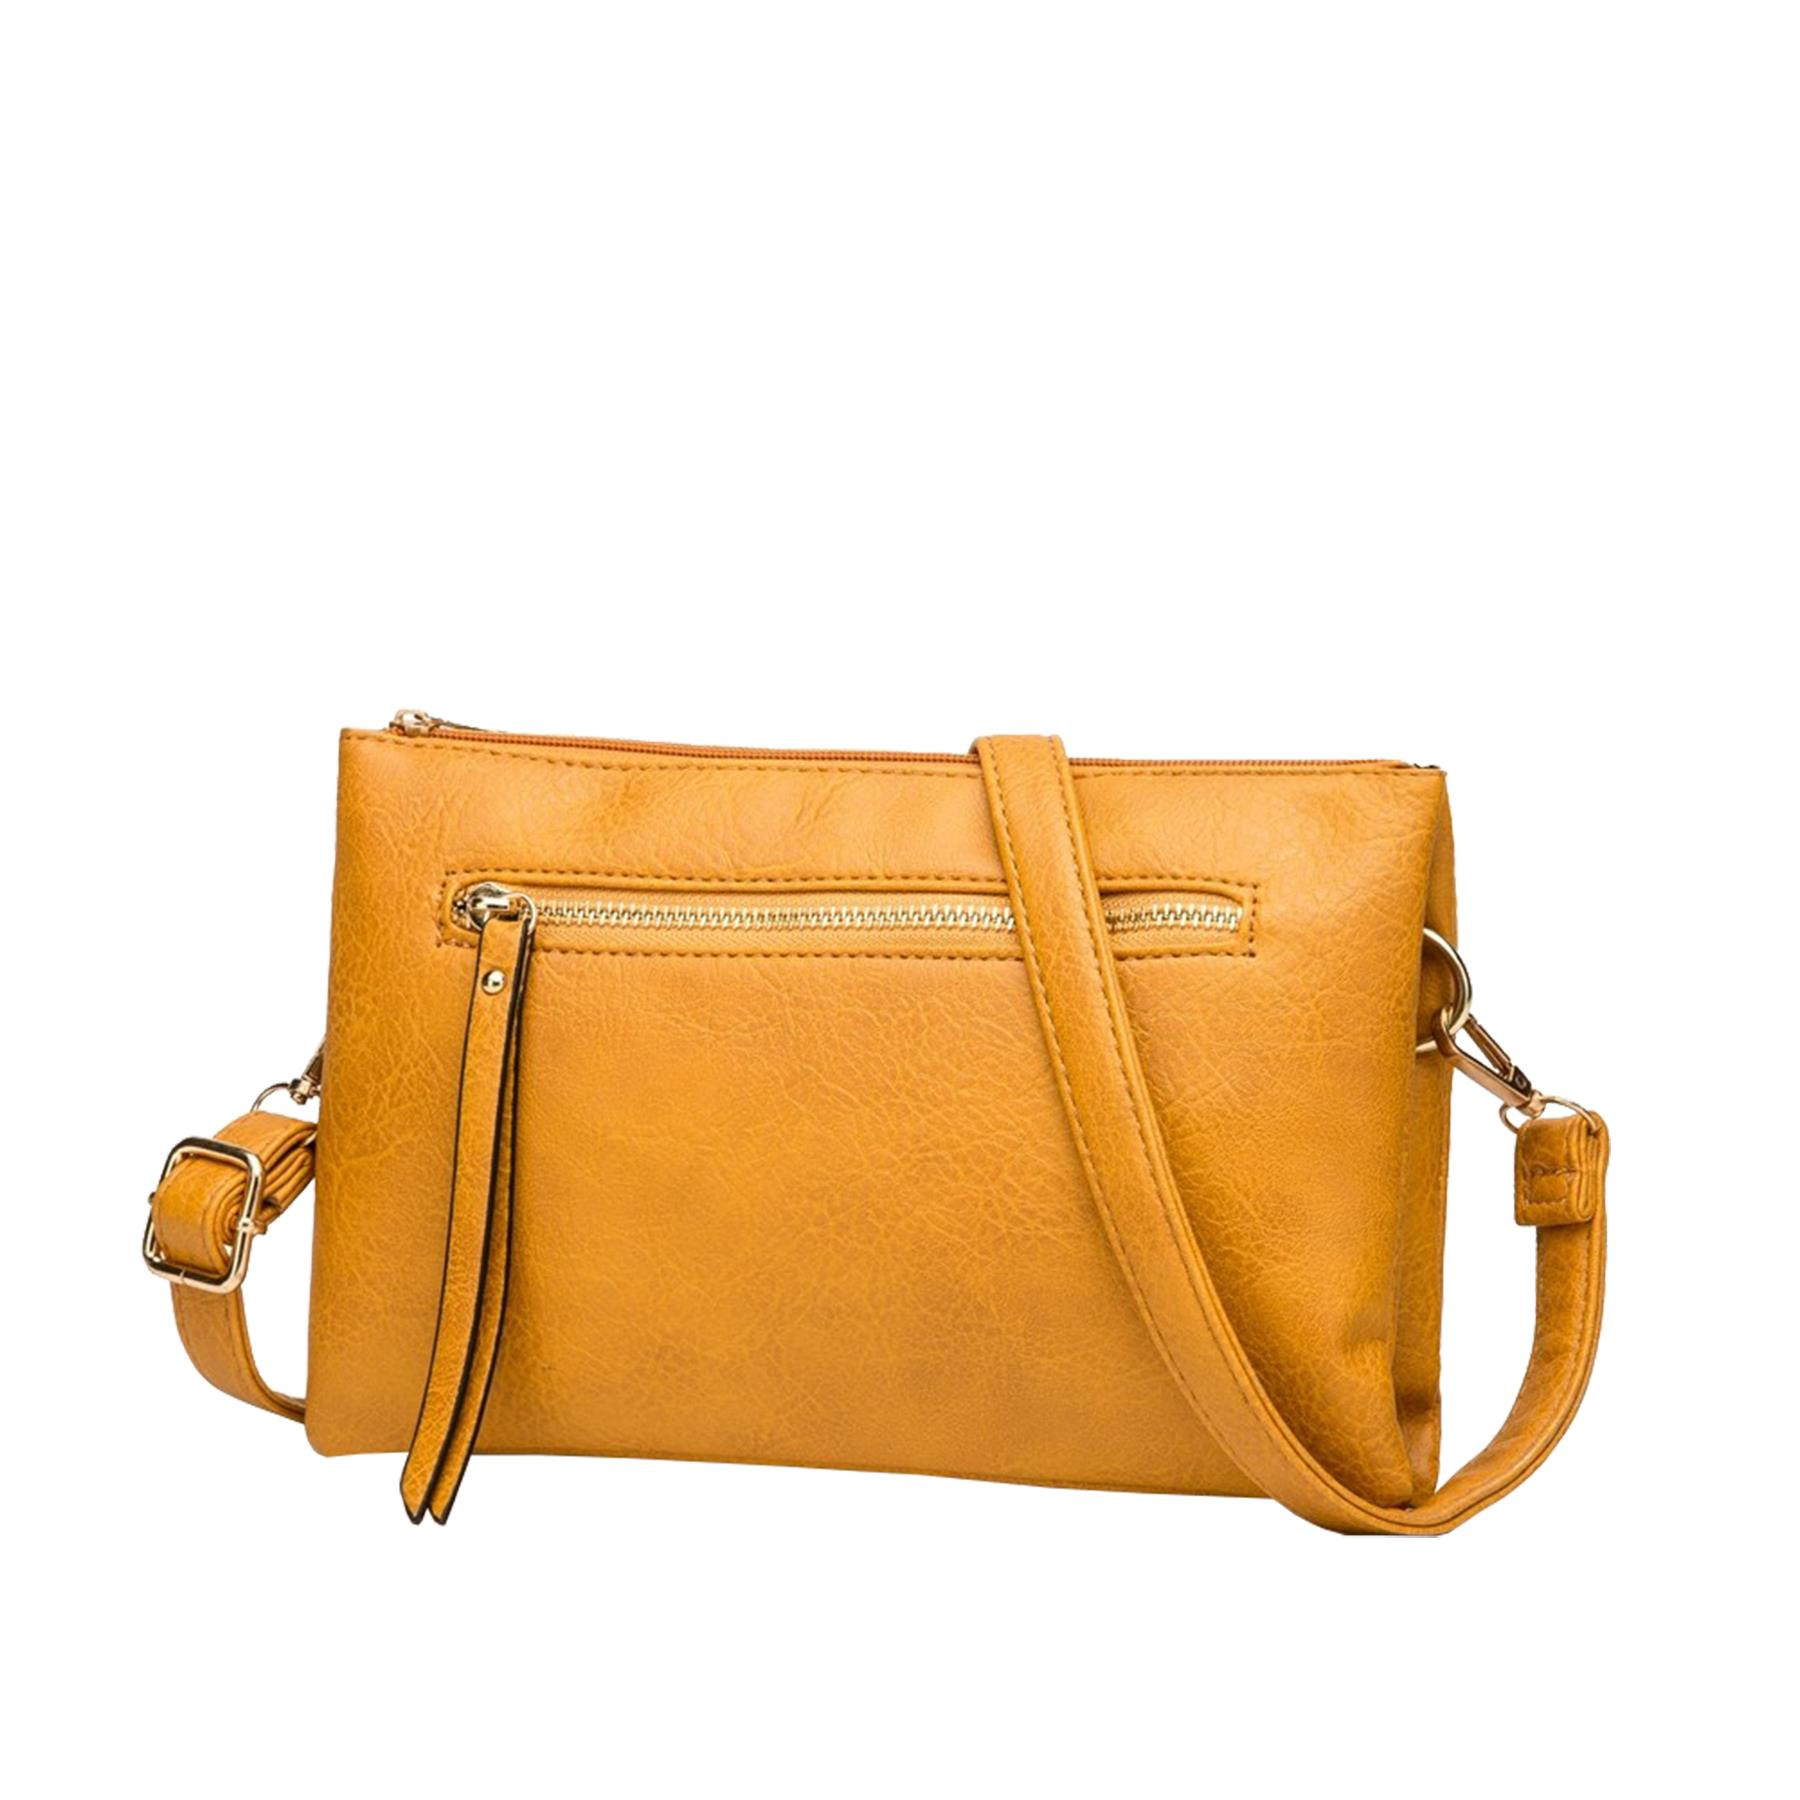 New-Plain-Synthetic-Leather-Women-s-Simple-Casual-Cross-Body-Bag thumbnail 6